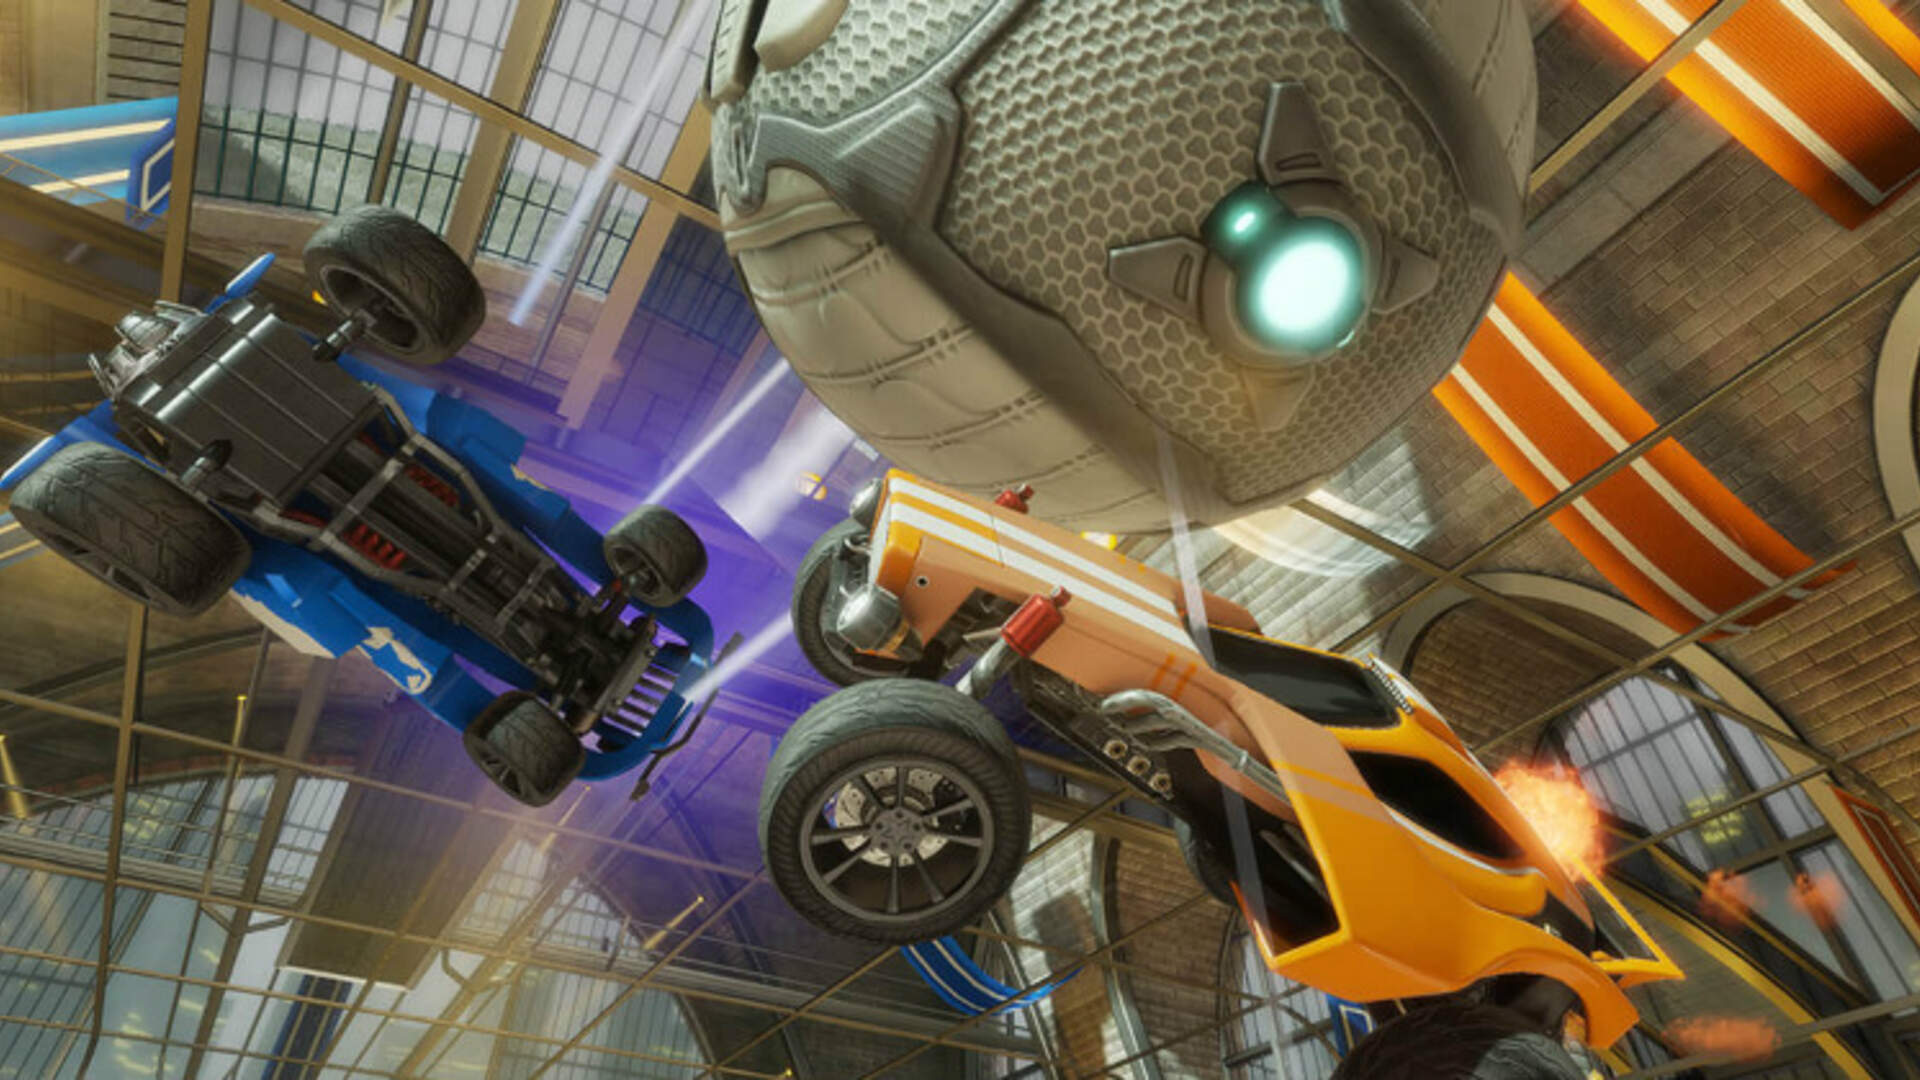 Microsoft Letting Xbox One Games Play With Other Networks